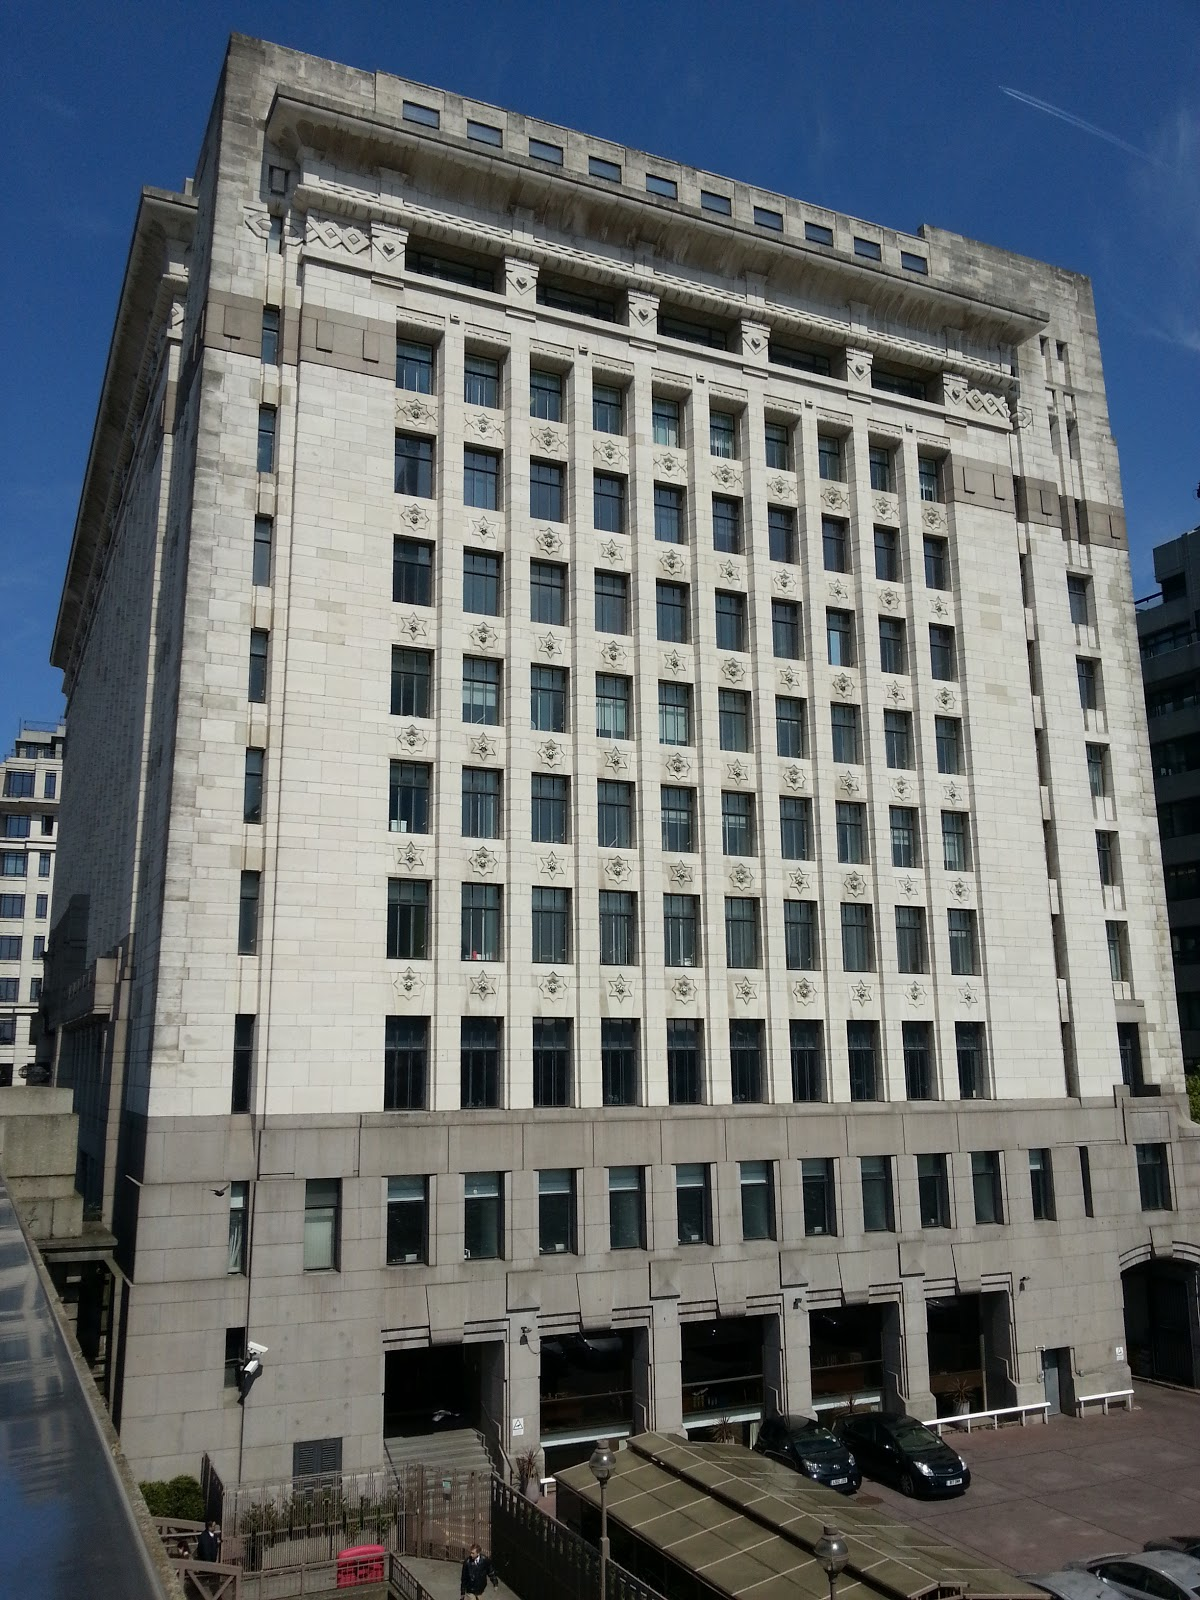 Adelaide House, London Bridge